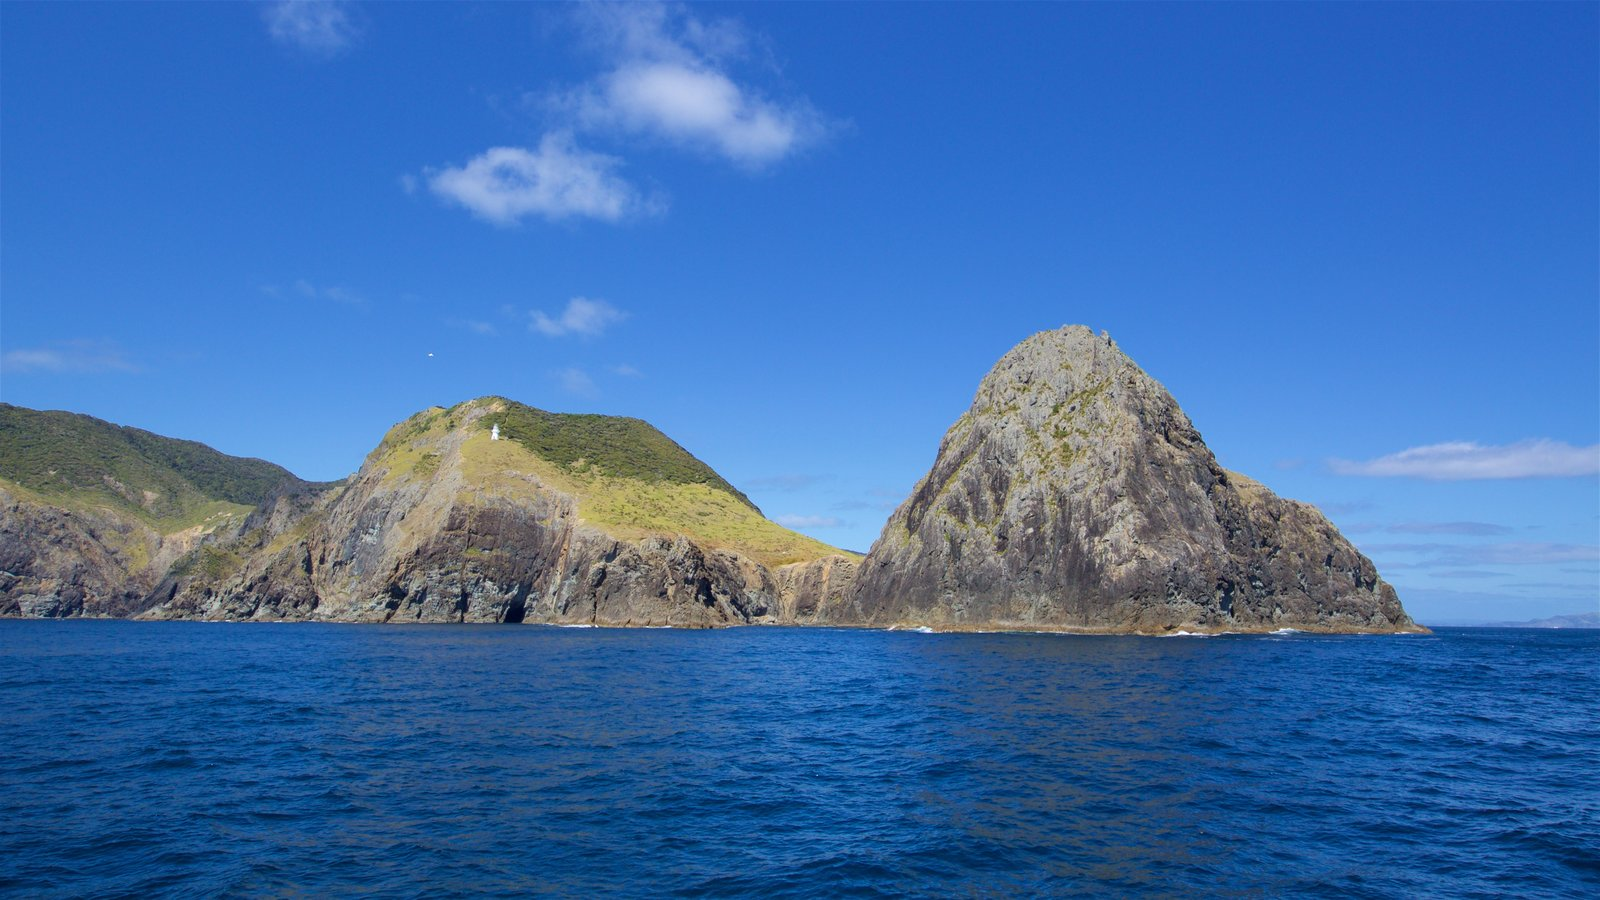 Cape Brett Lighthouse featuring rocky coastline and a bay or harbor